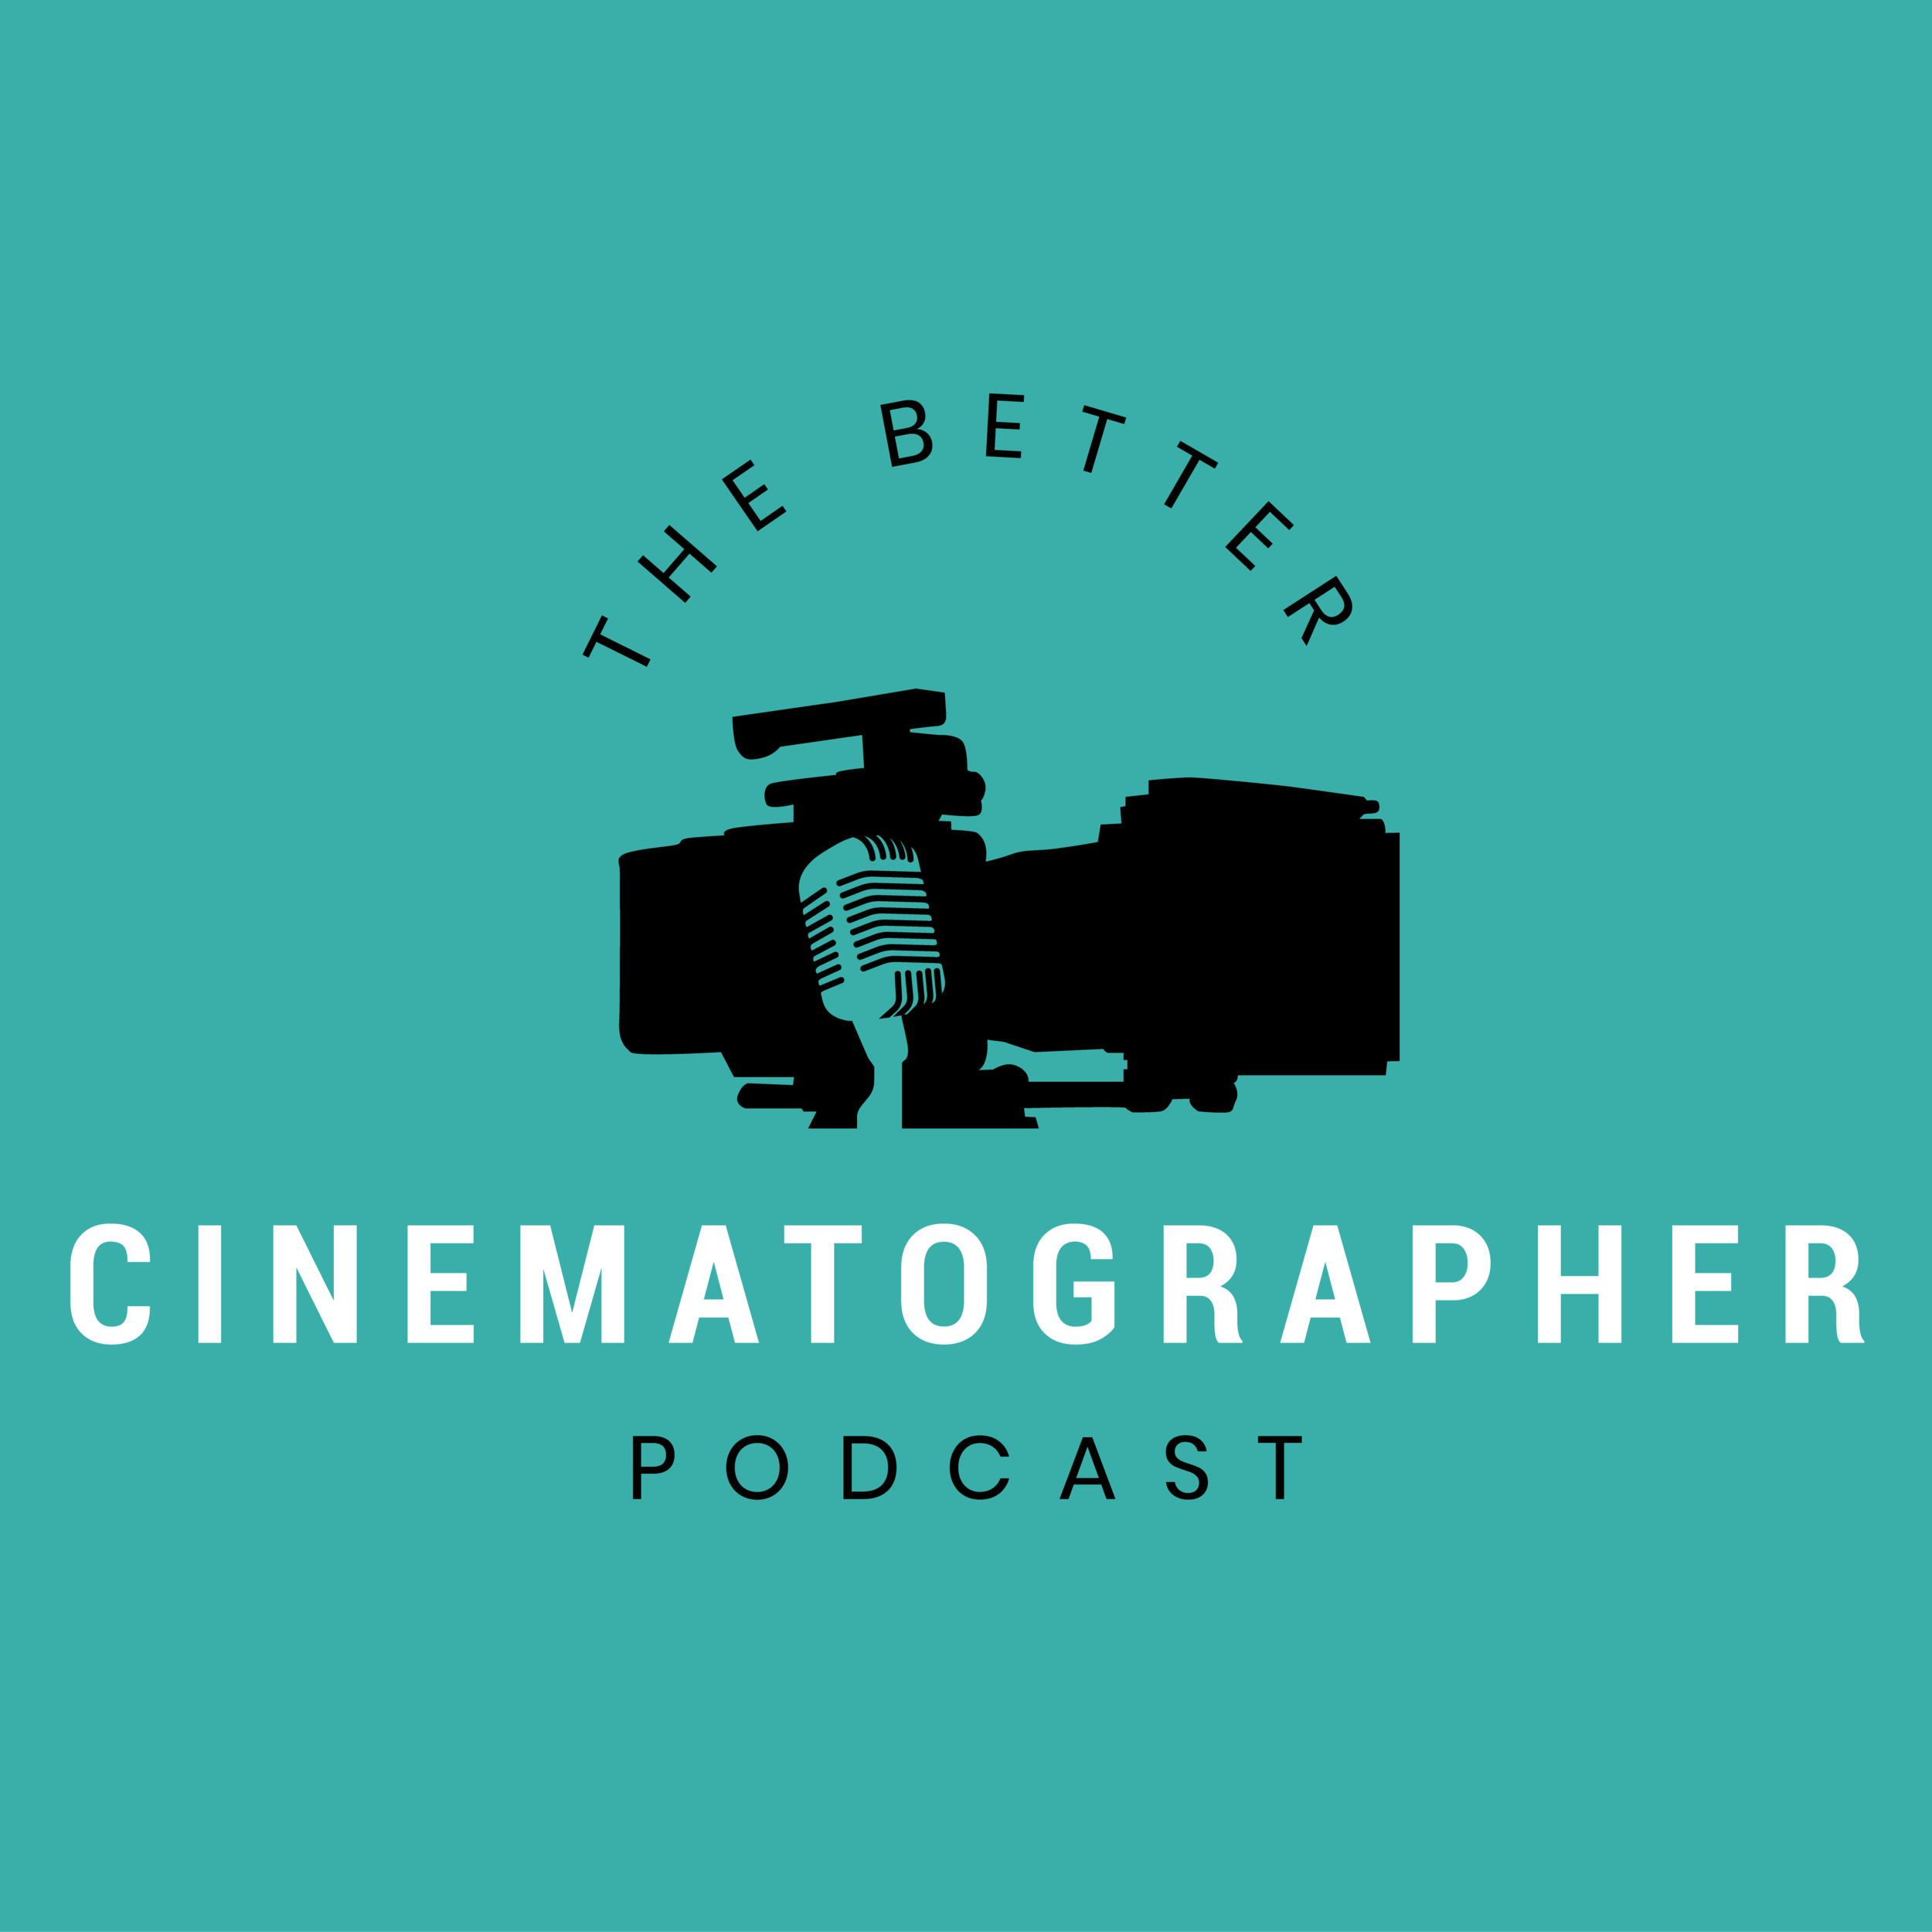 the better cinematographer podcast logo carter hewlett logo